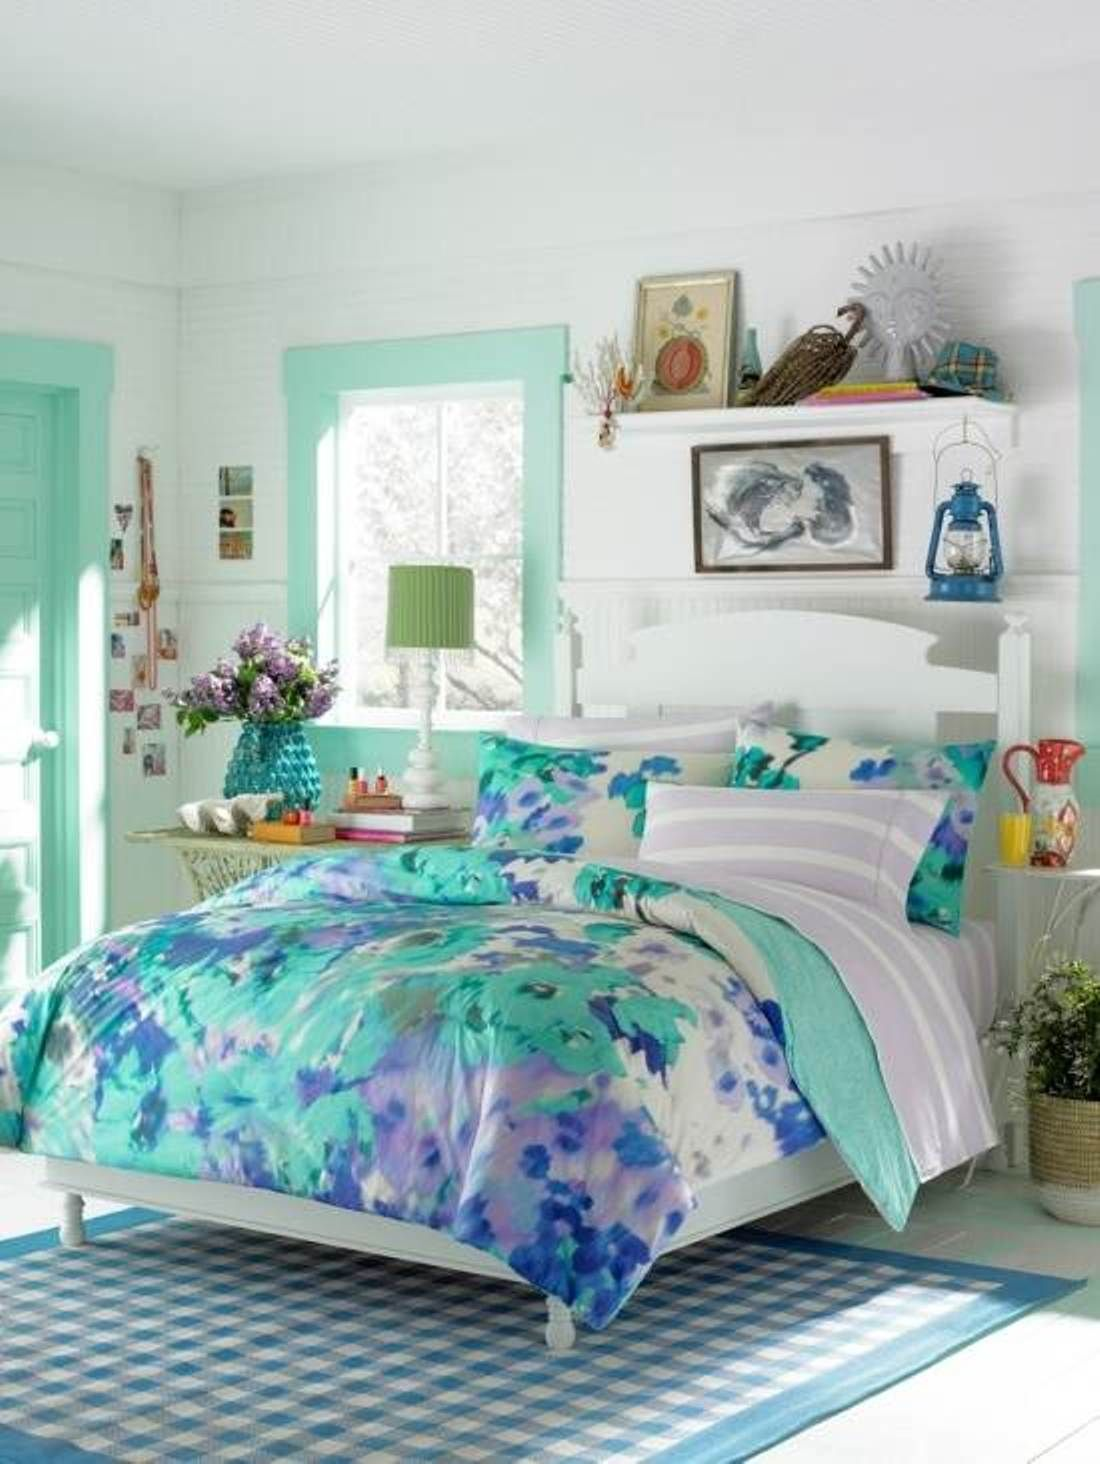 Blue room colors for teens - White Wall Ceiling Color Teen Bedroom Themes With Soft Blue Leaf Motive Bedding And White Wood Headboard On Soft Blue White Mosaic Style Rug Area Also Green